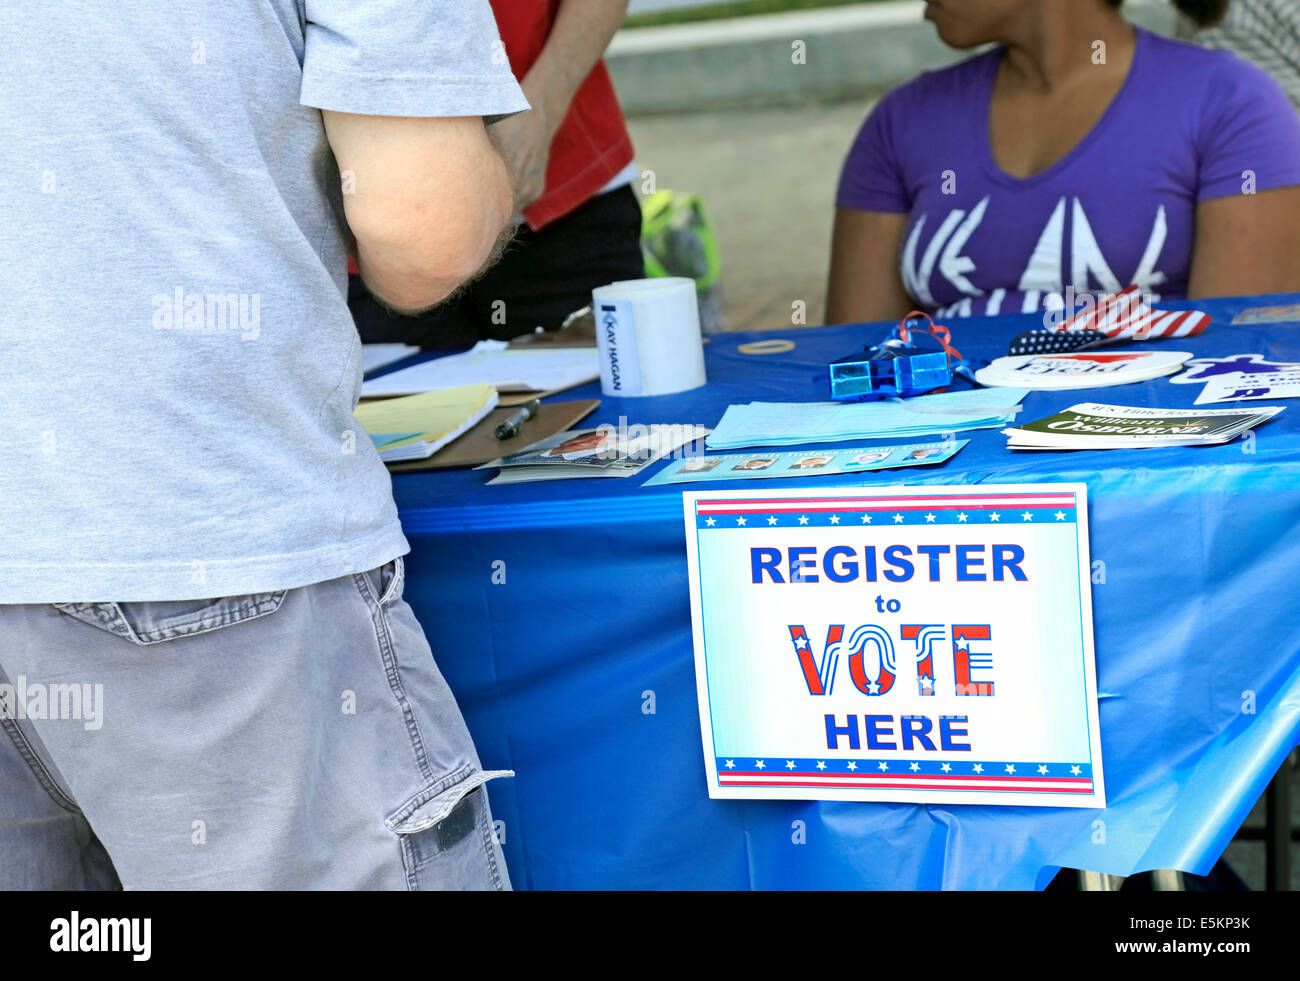 Young man at Democratic party Voting registration booth with sign. - Stock Image